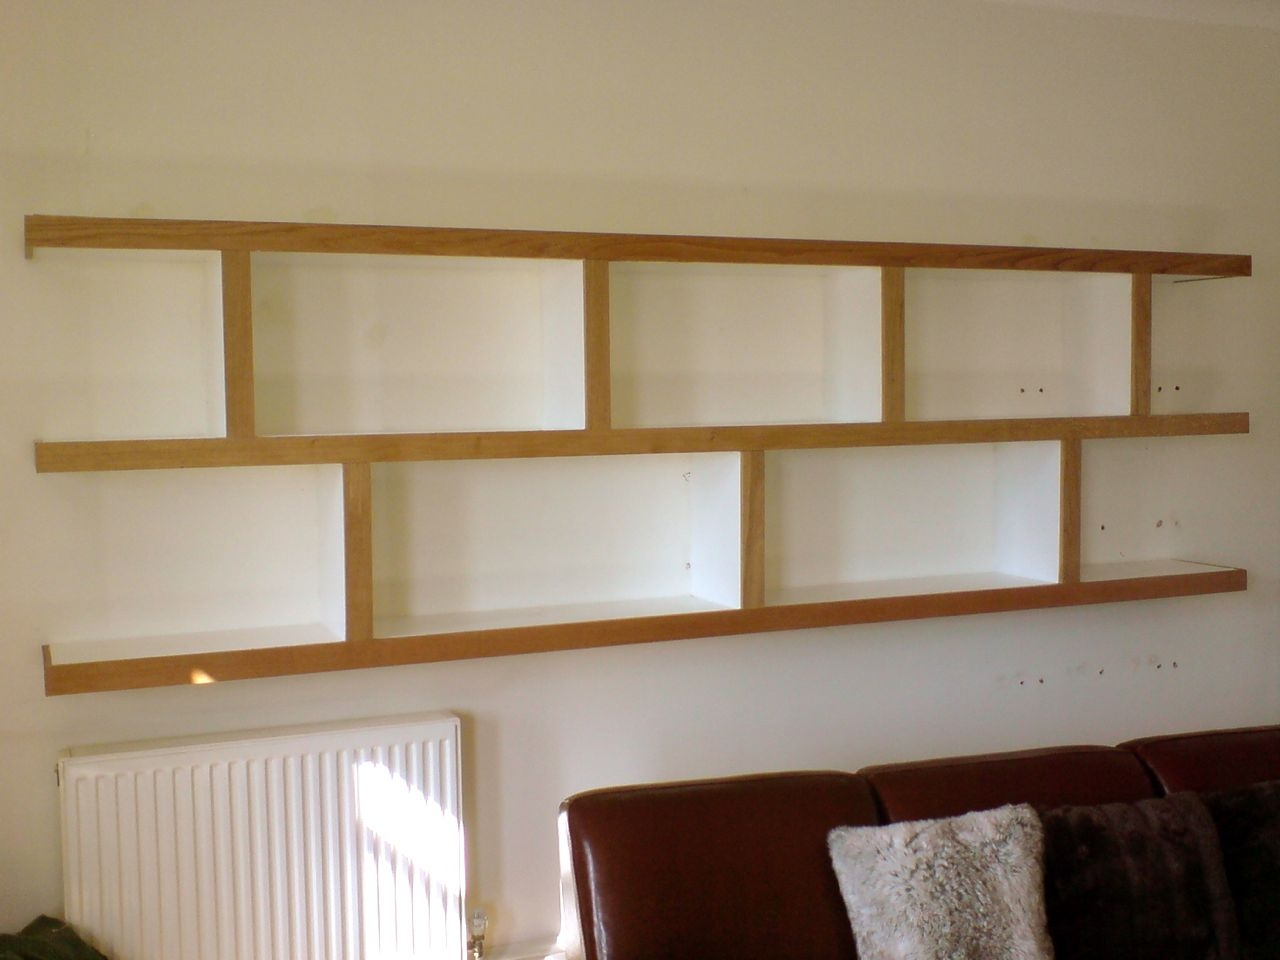 Best Sleek Wall Shelving Units For Bedrooms 1065 Intended For Wall Shelving Units (#3 of 15)